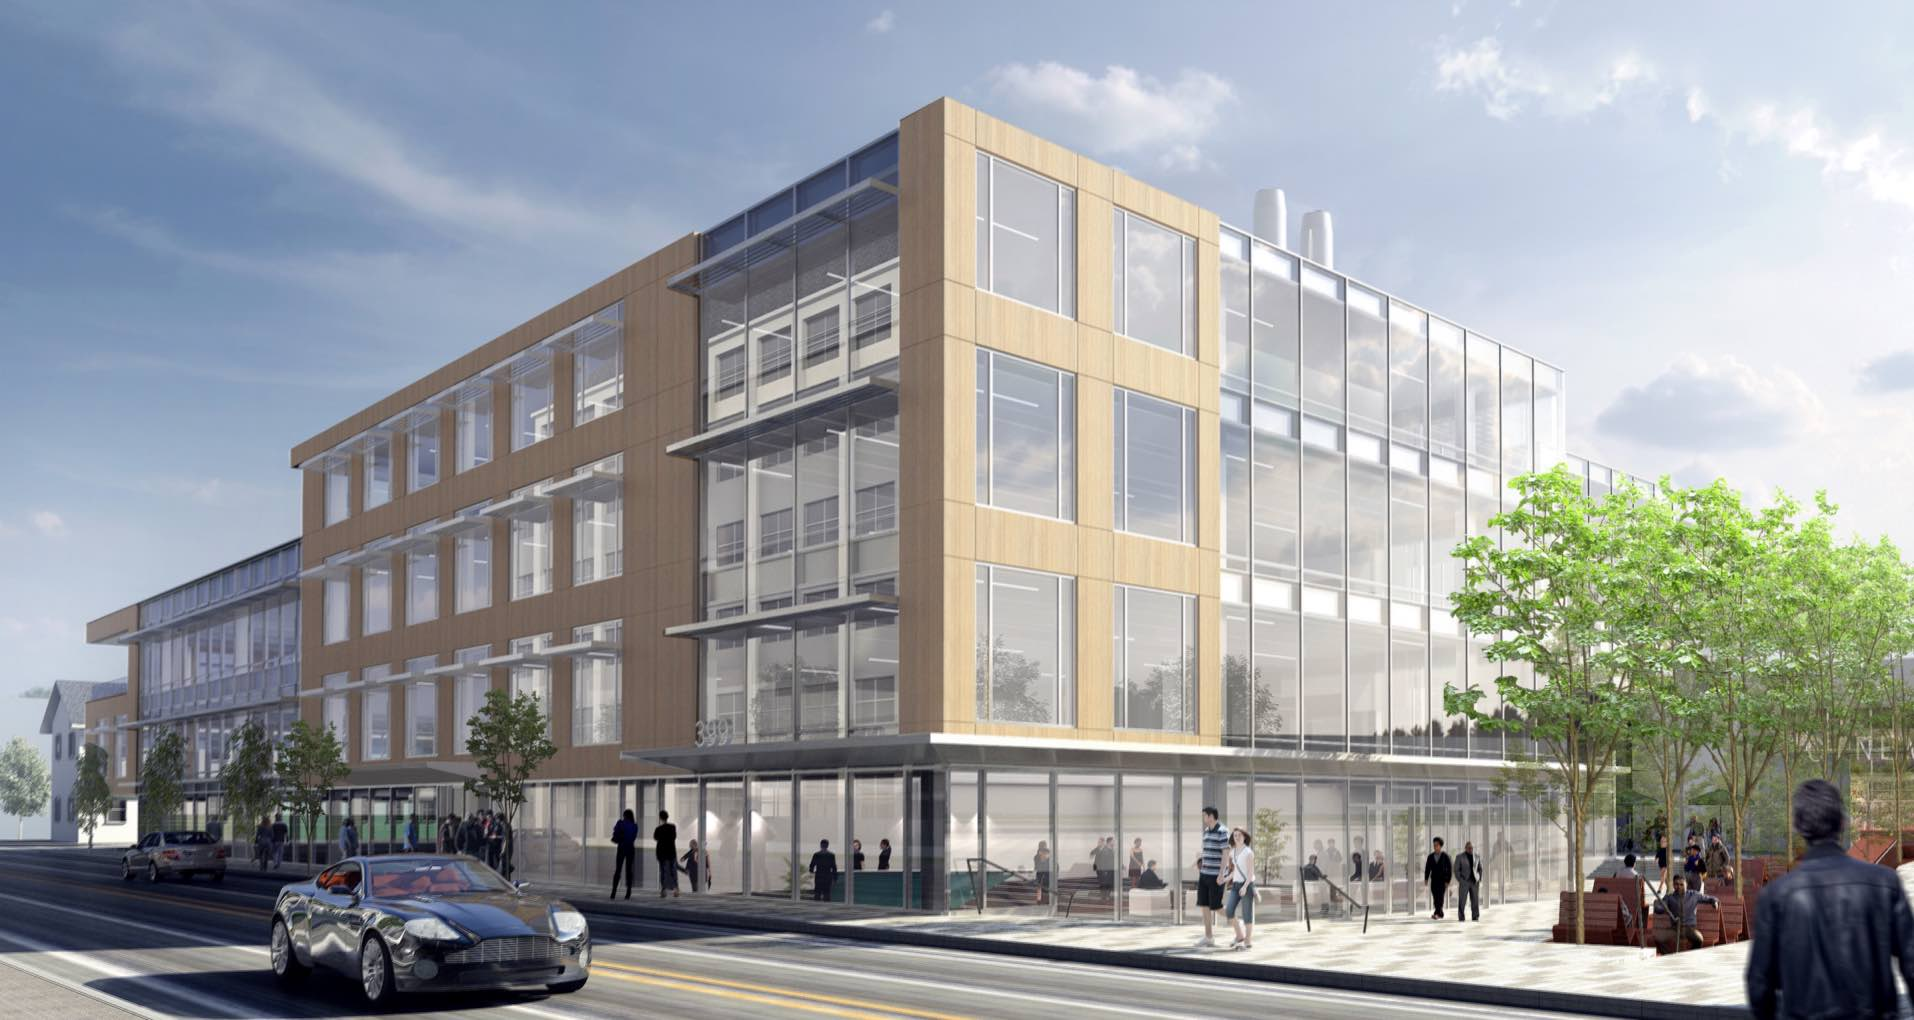 399 binney street kendall square cambridge office lab retail development alexandria real estate equities bargmann hendrie archetype